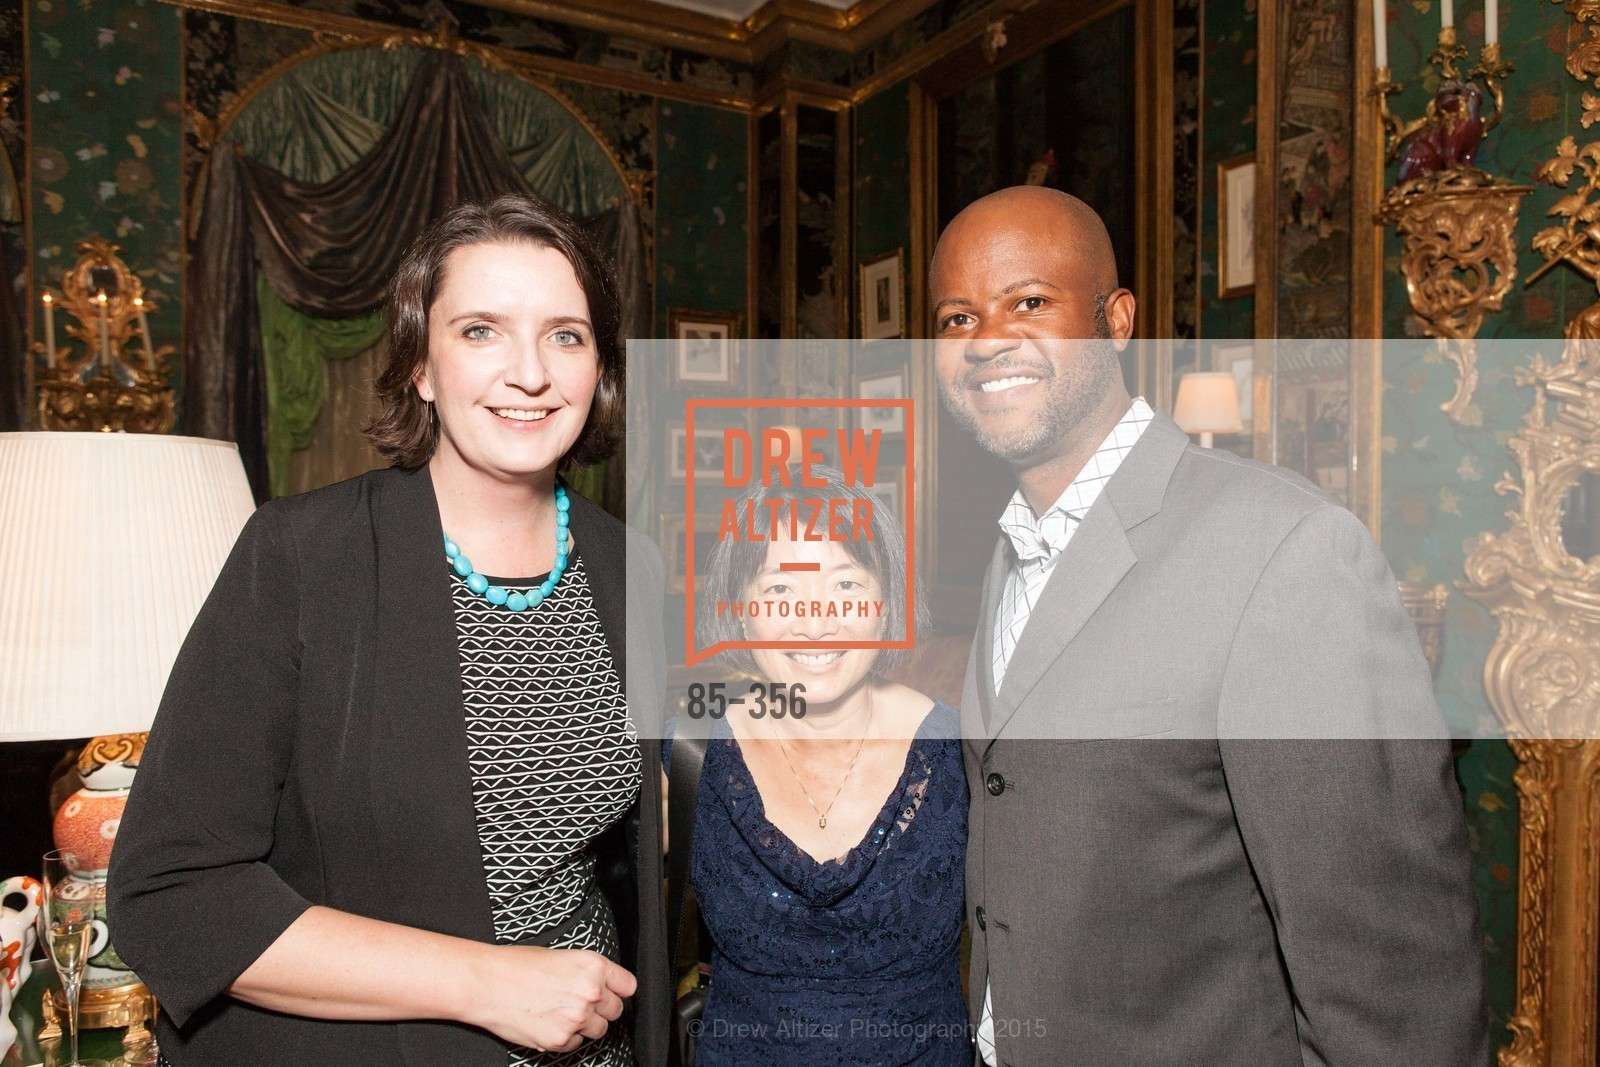 Kate Sheeran, Stephanie Lee, Vincent Rowe, Getty Hosts the New Century Chamber Orchestra, Private Residence, October 8th, 2015,Drew Altizer, Drew Altizer Photography, full-service agency, private events, San Francisco photographer, photographer california